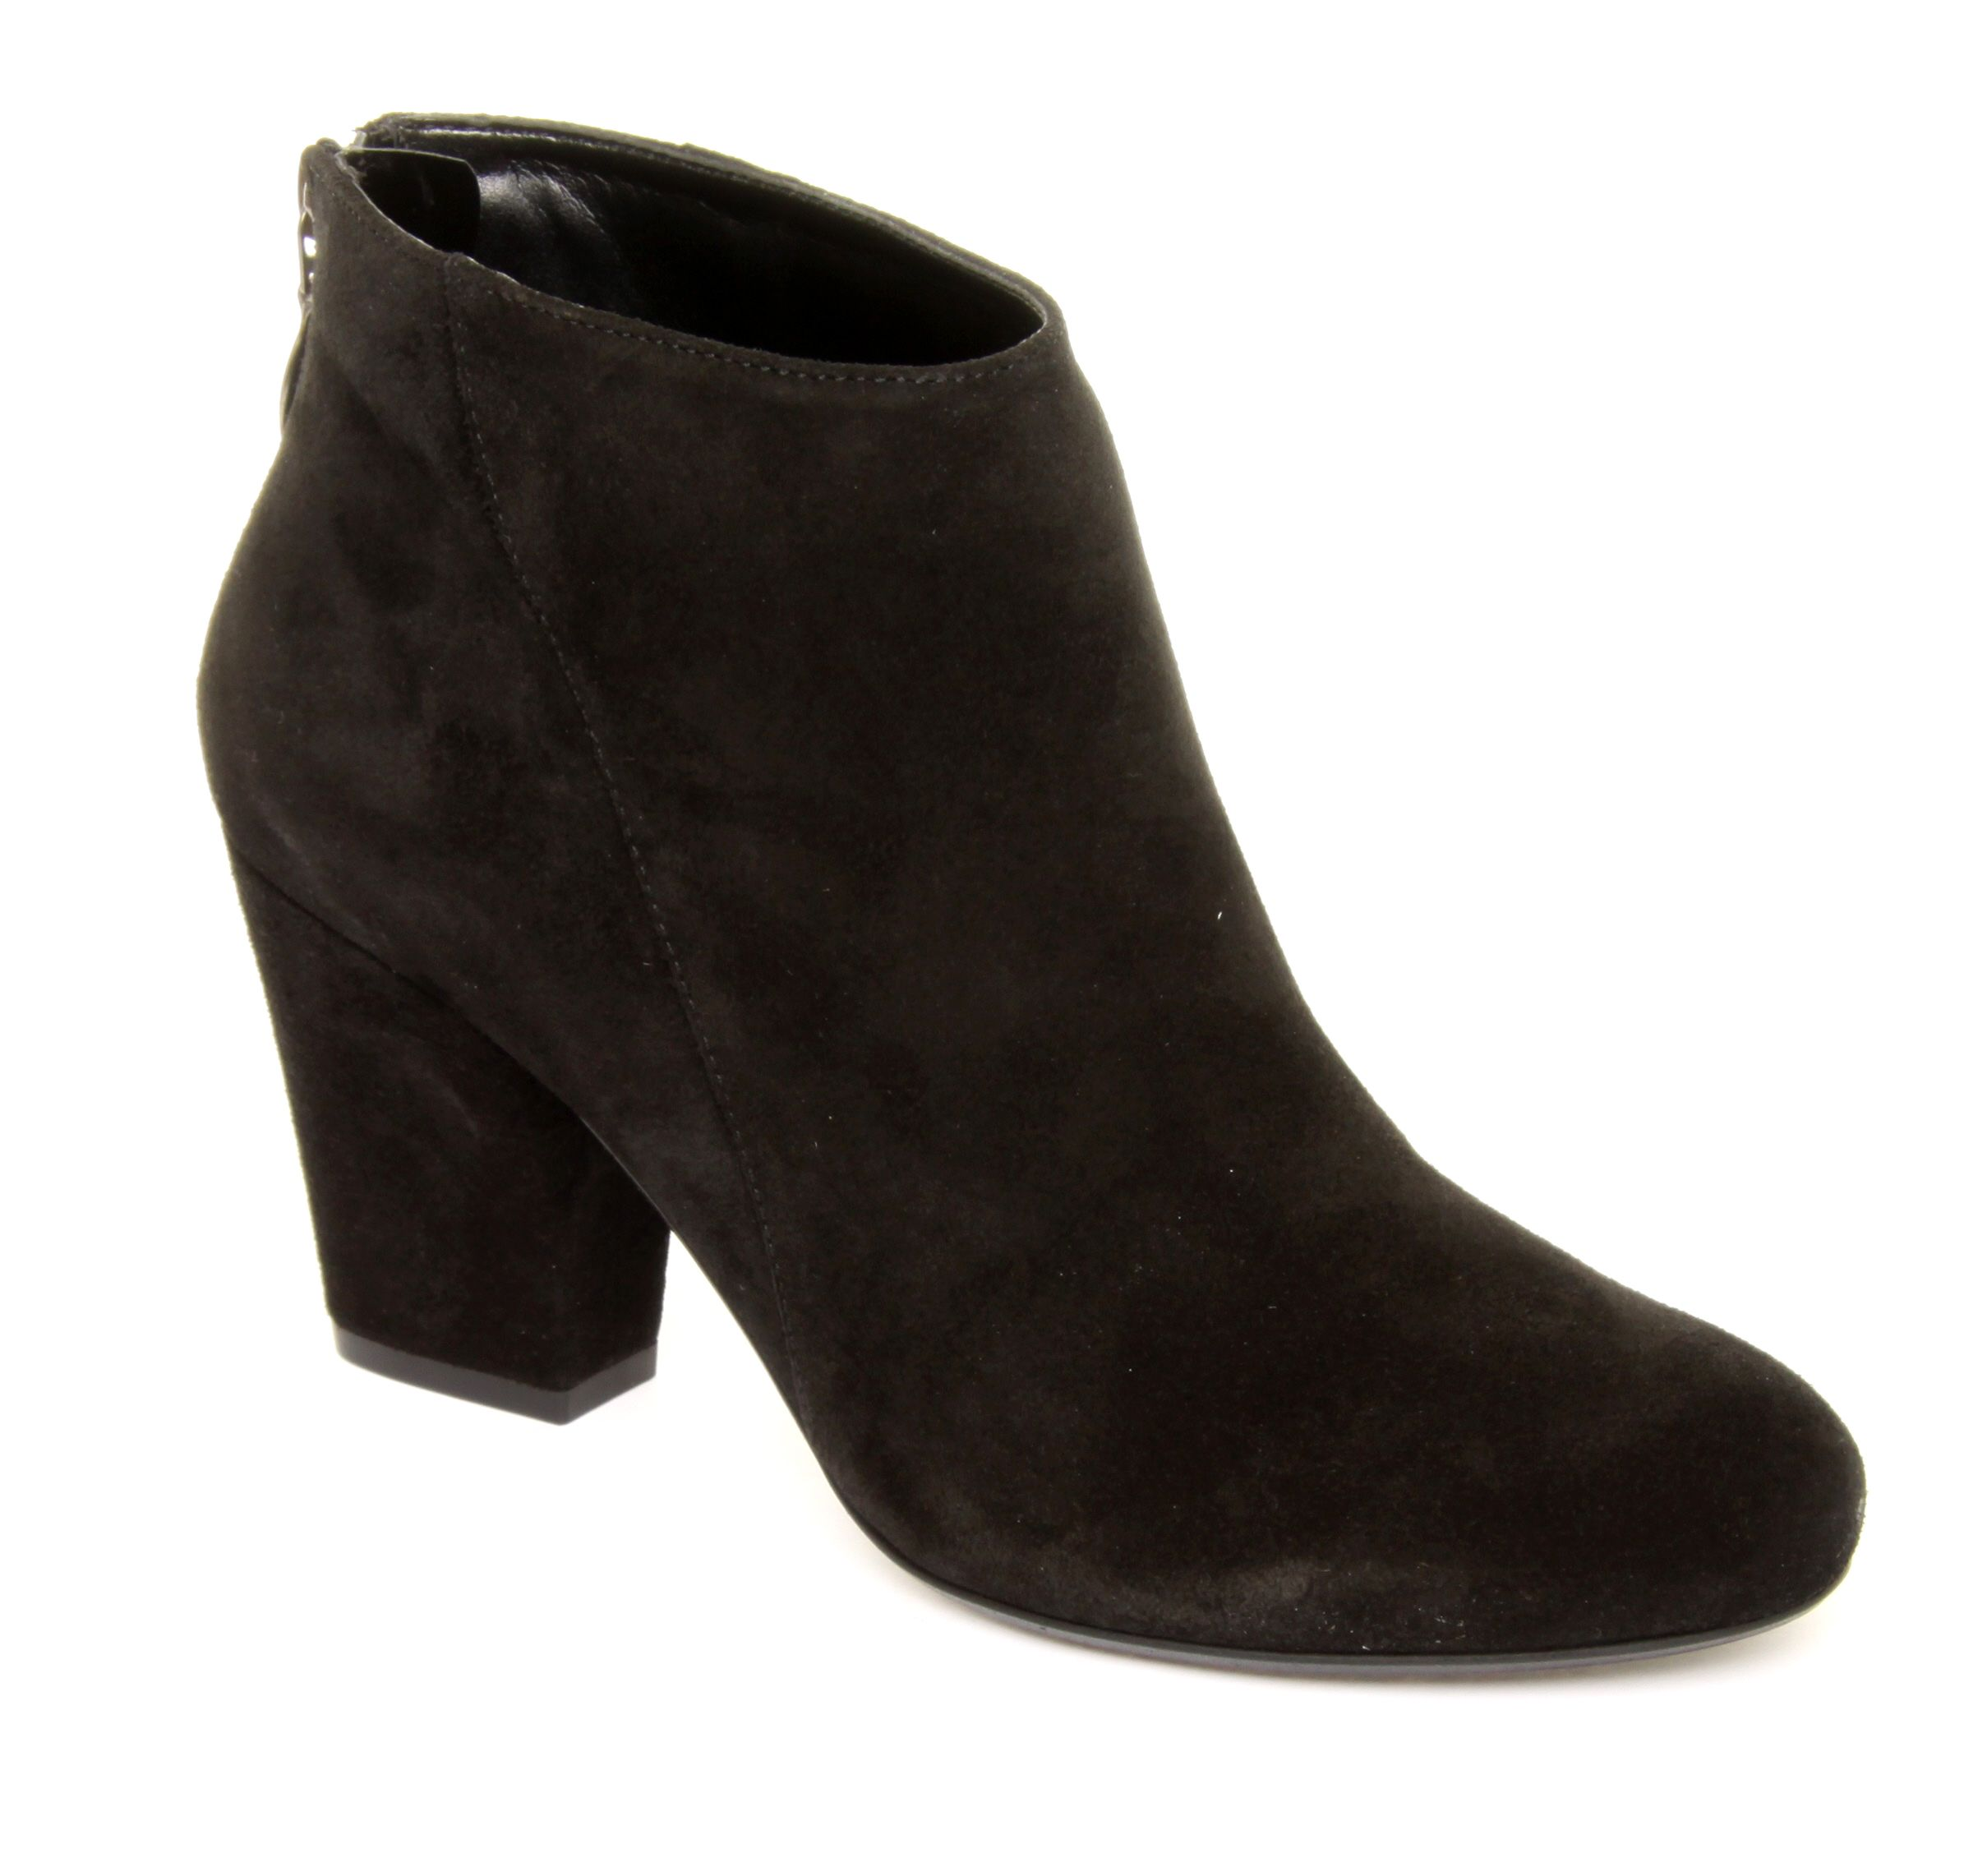 Nancy ankle boot